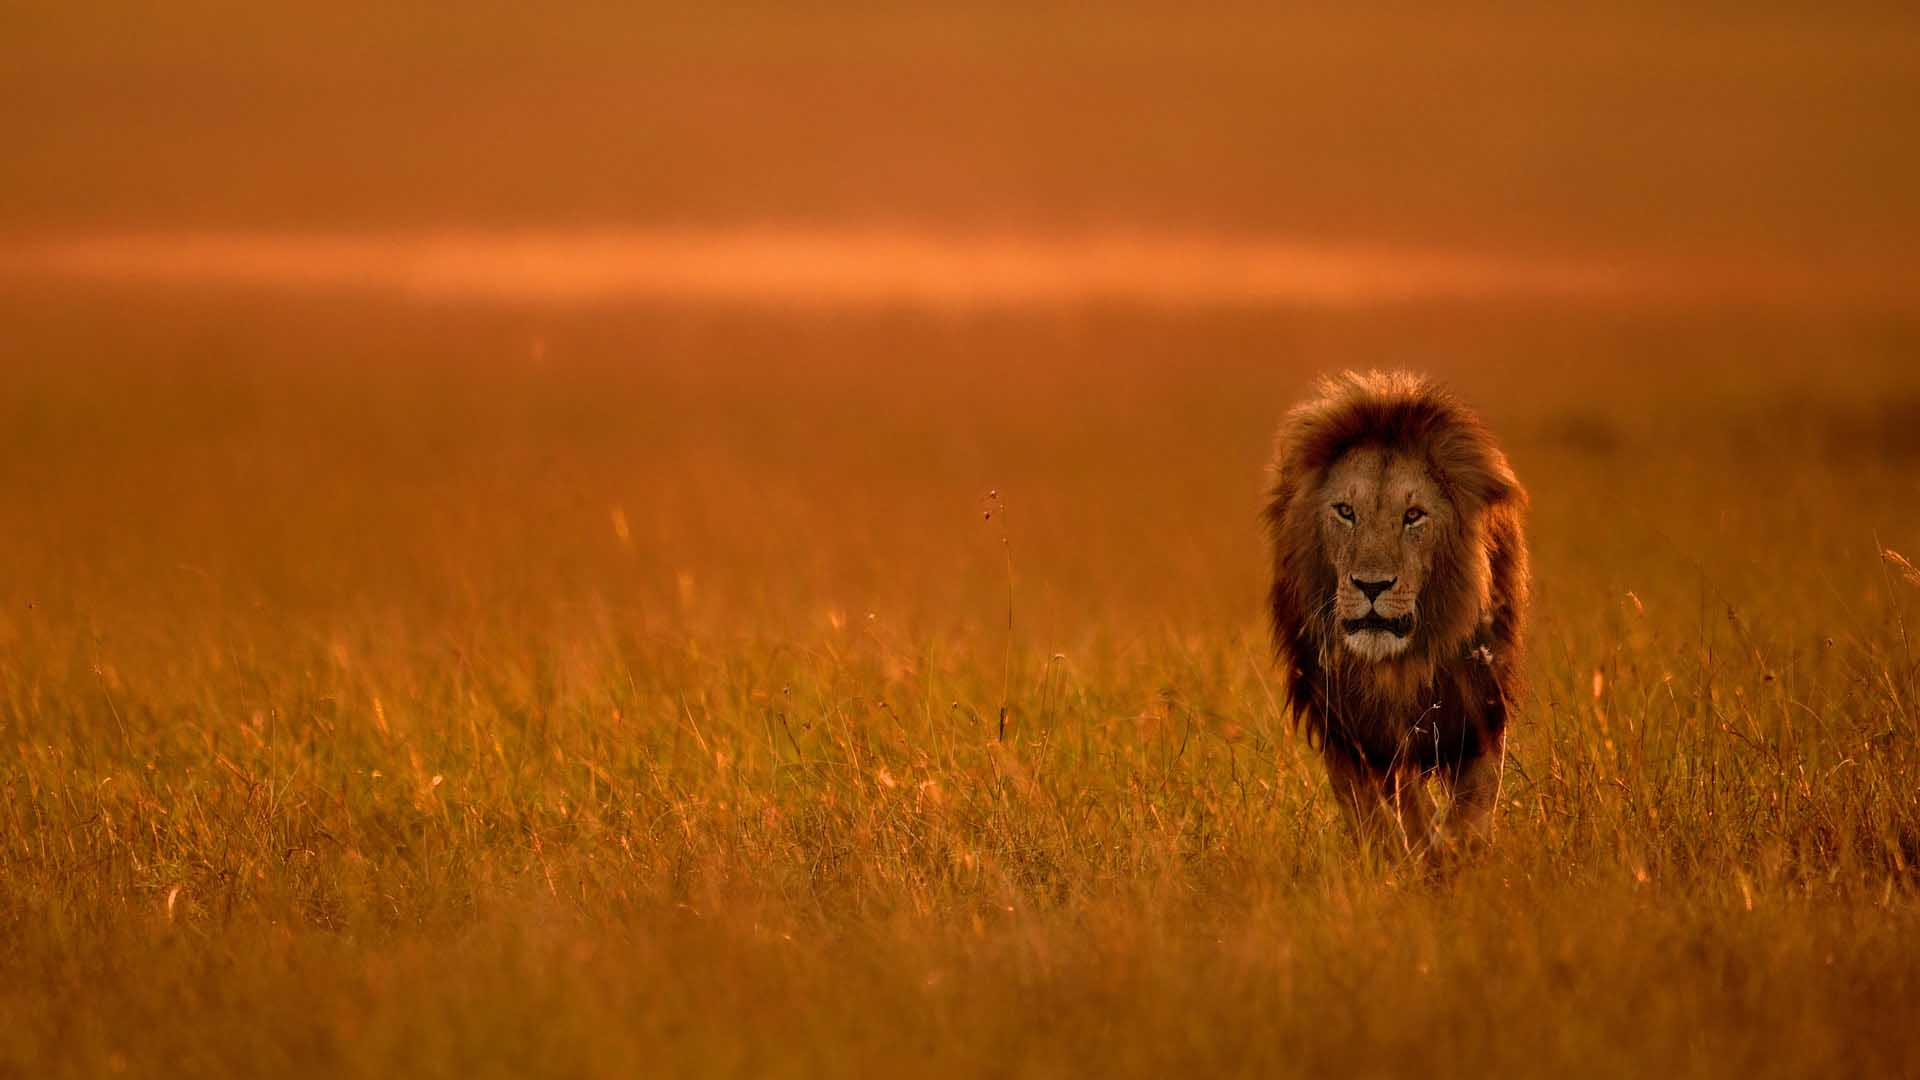 Lion with big mane, Kenya